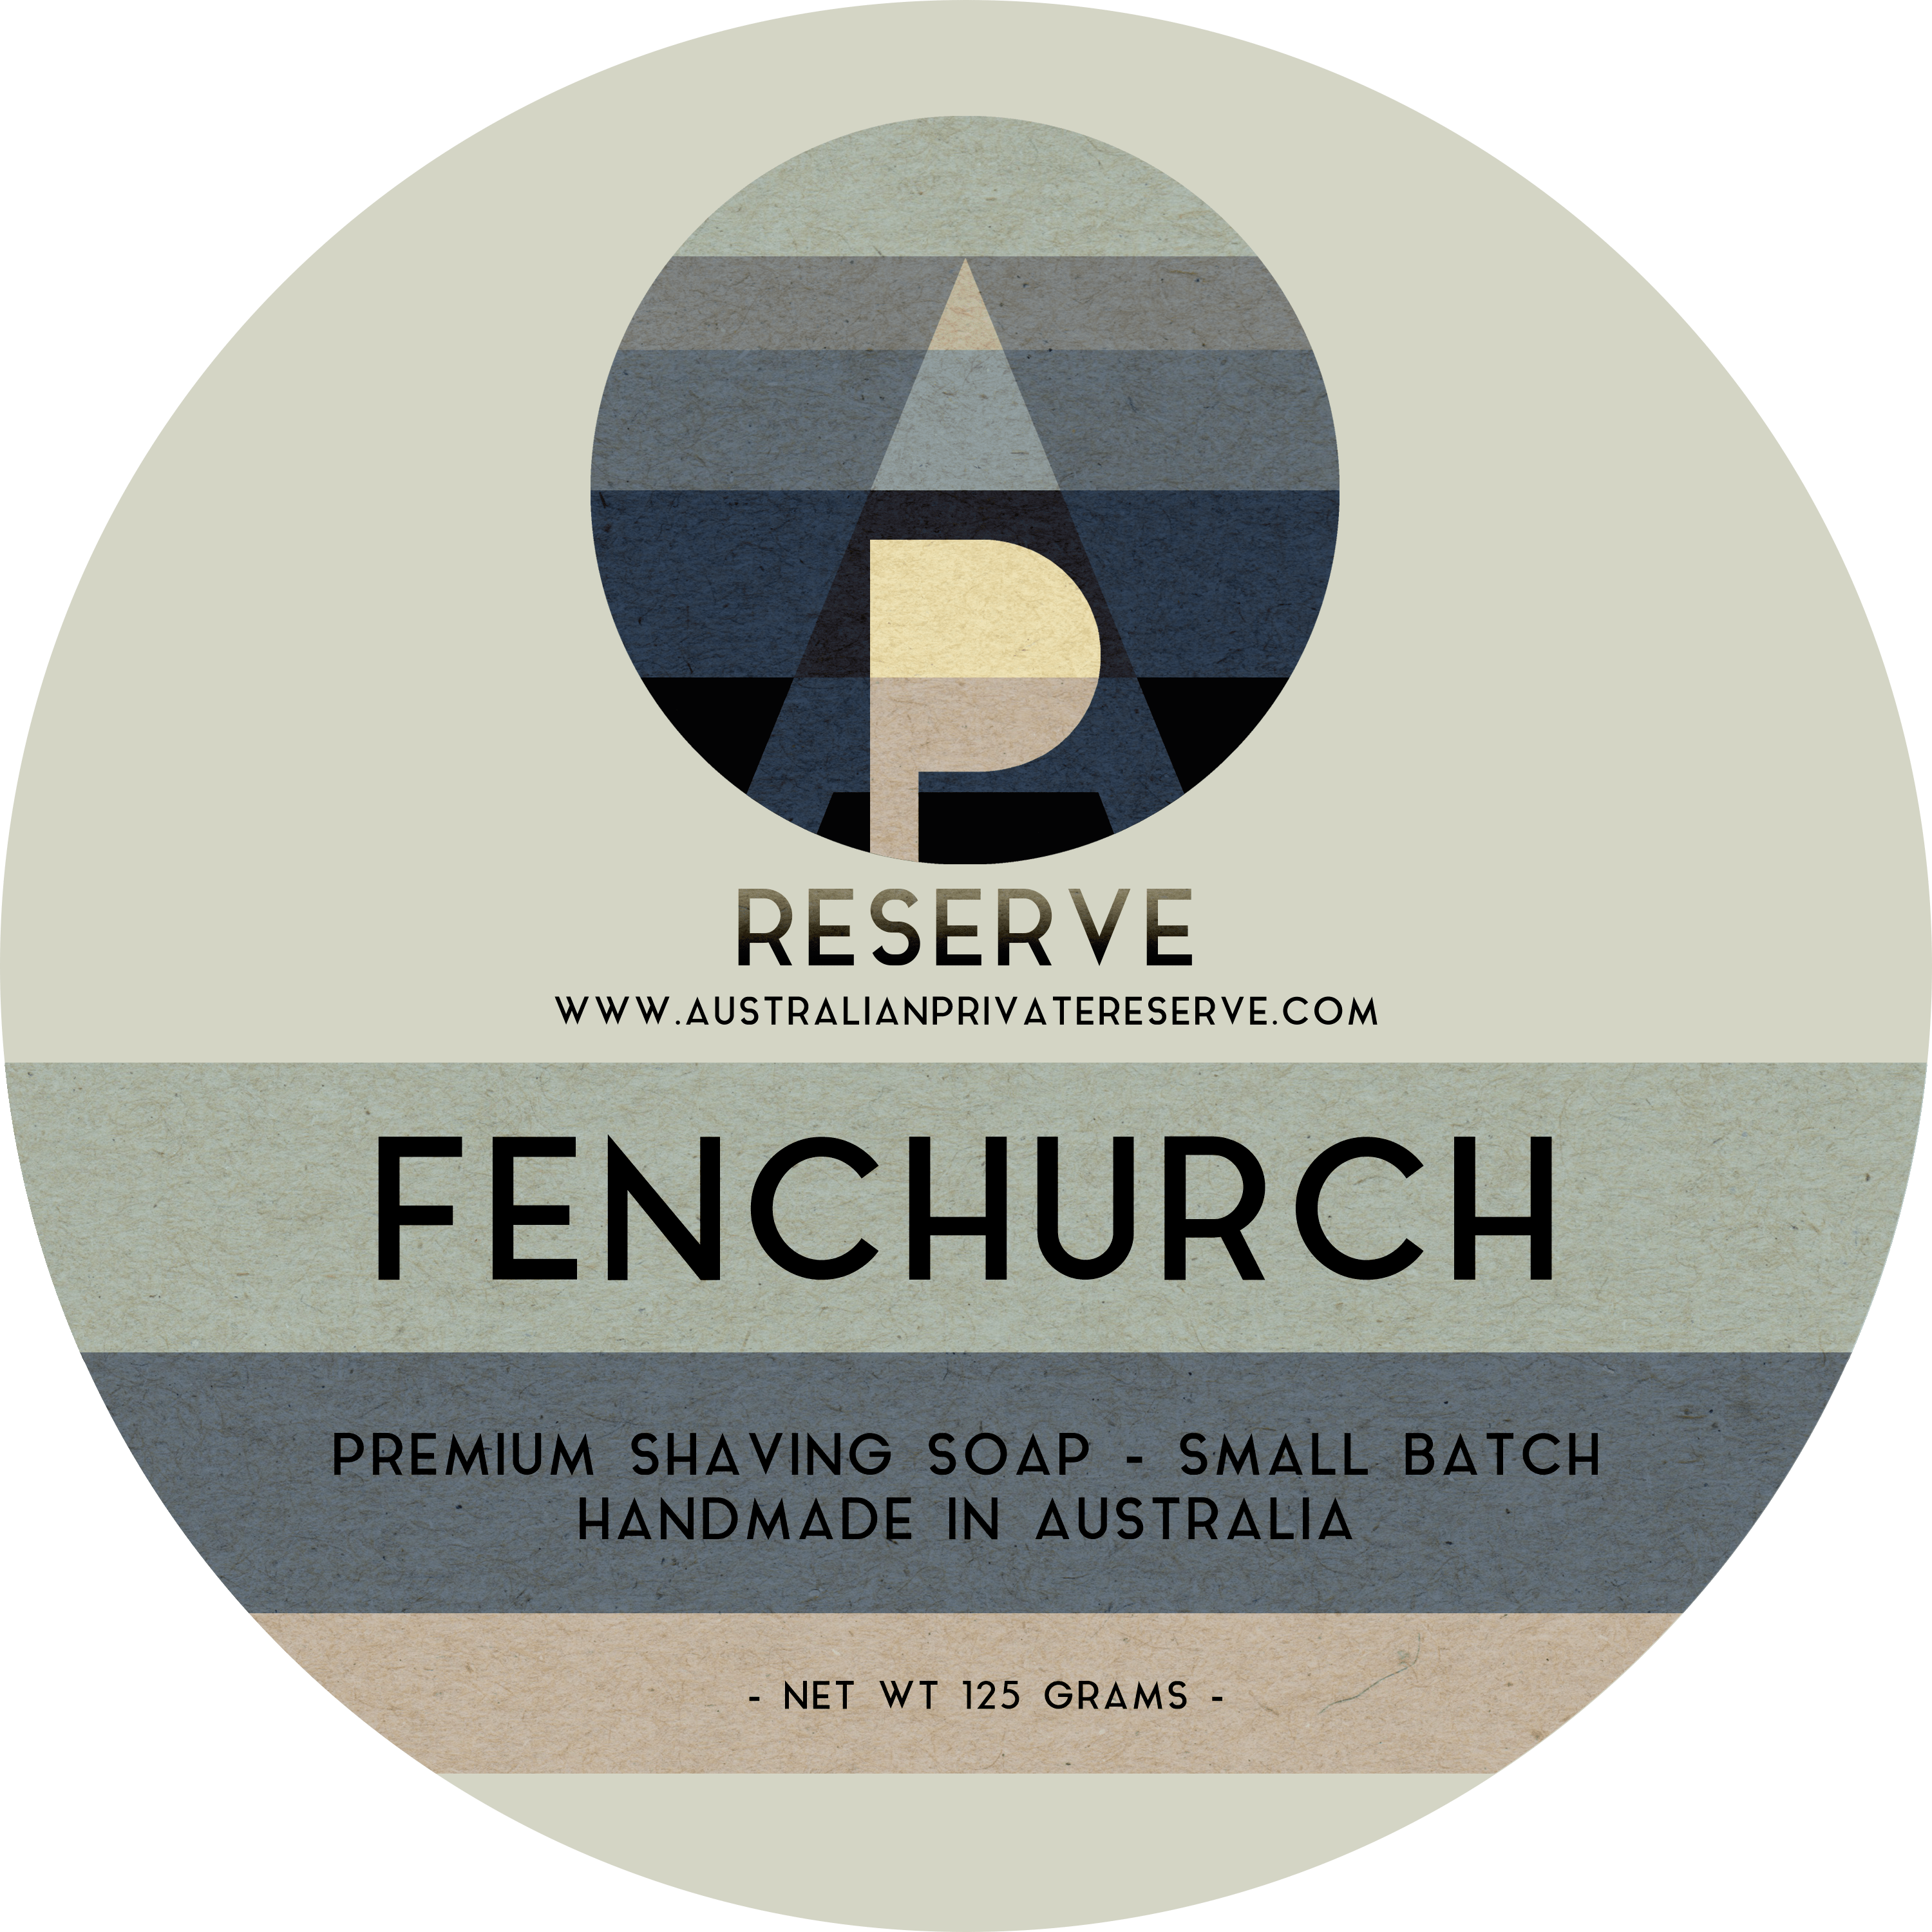 Australian Private Reserve - Fenchurch - Soap image